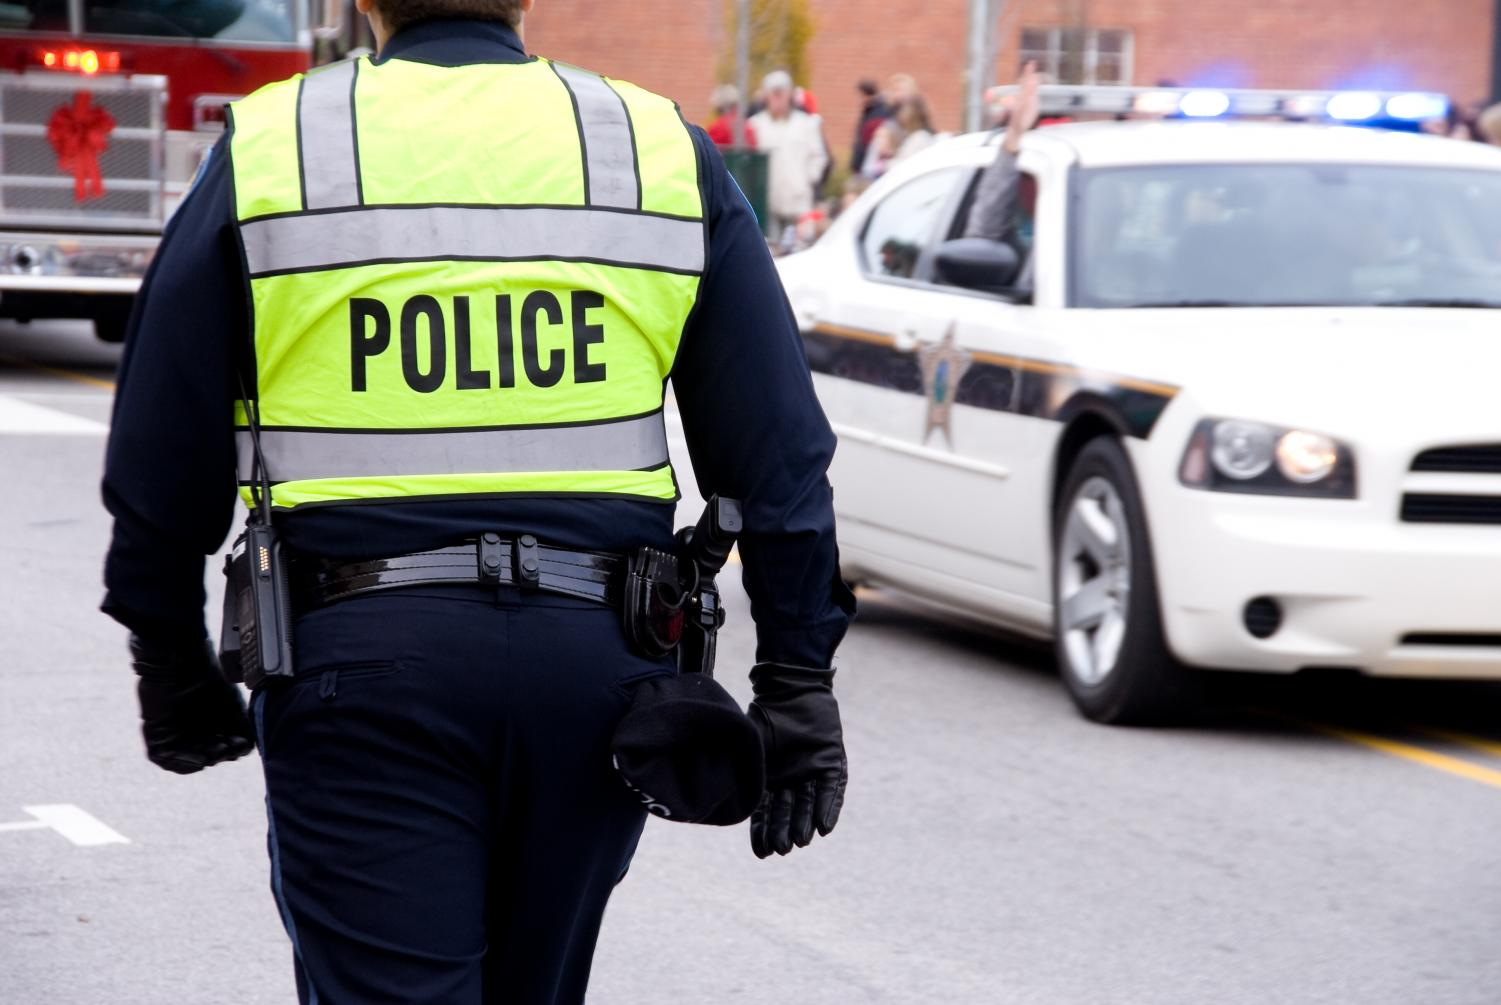 Headlines regarding police brutality have been surfacing, which should be alarming to every one.    Image courtesy of CanStockPhotos(www.canstockphotos.com)